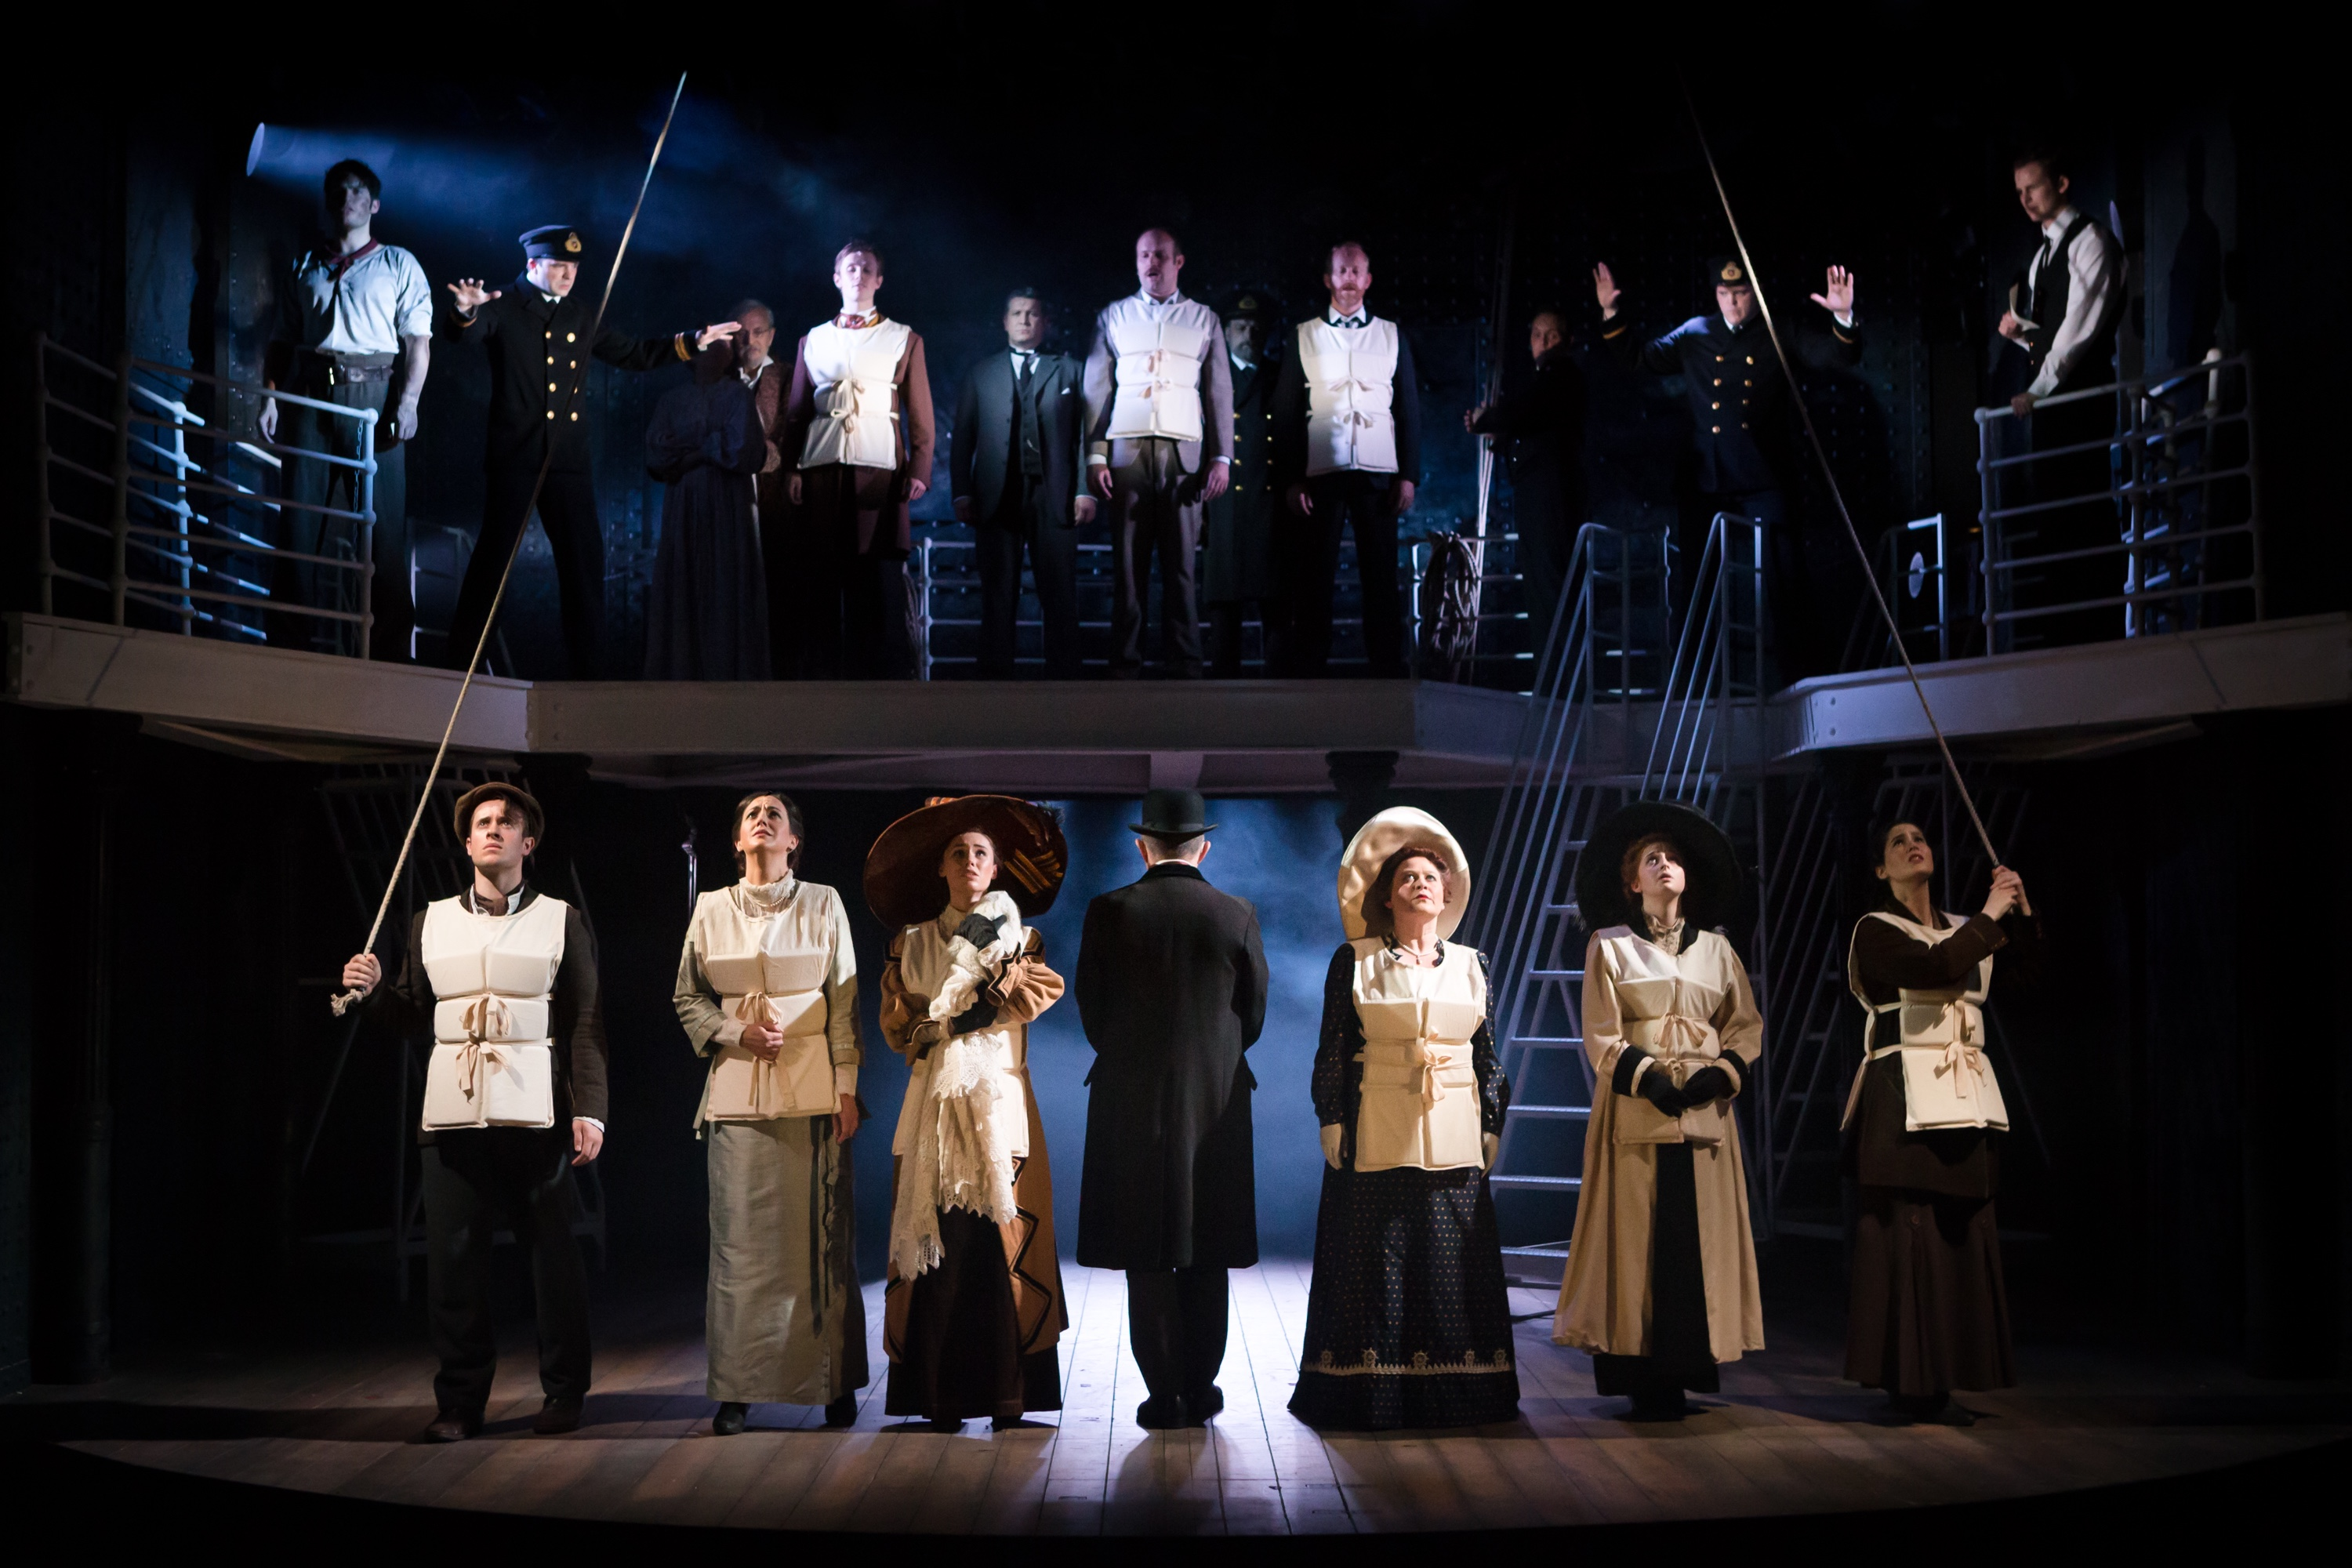 titanic-the-musical-foto-01-credit-scott-rylander